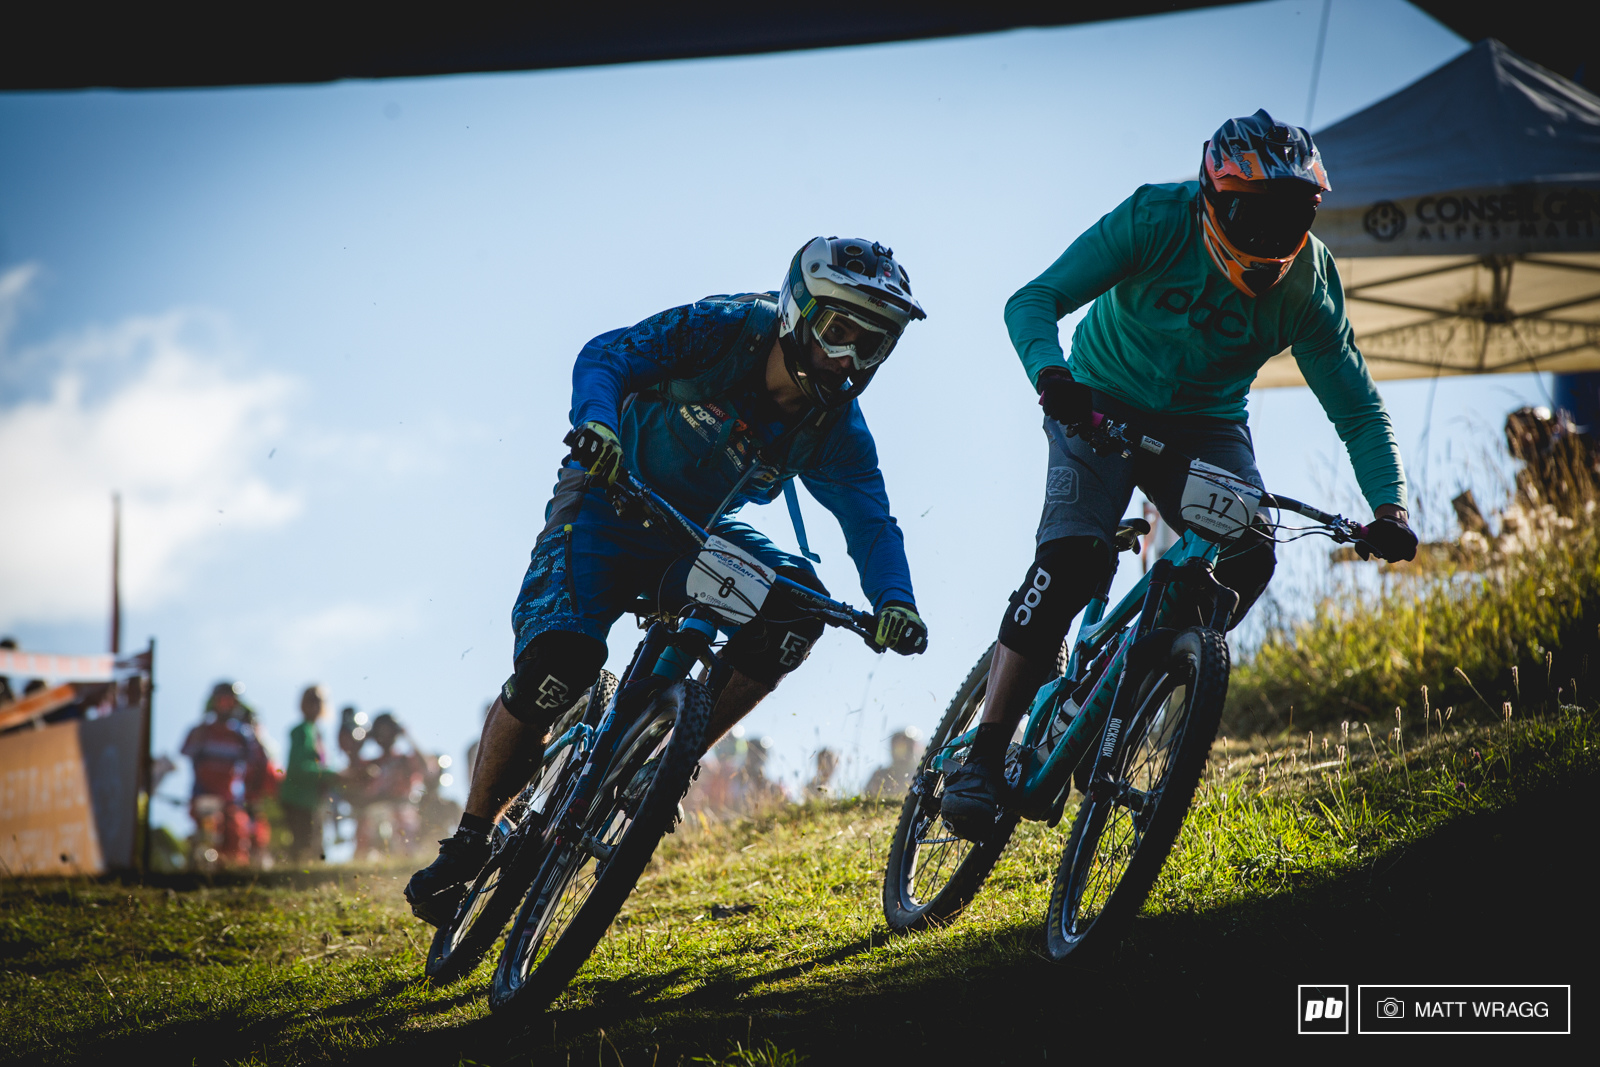 French Enduro Series overall champion for 2015 Sebastian Claquin got up close and personal with Julien Camellini as they sprinted for the first corner.